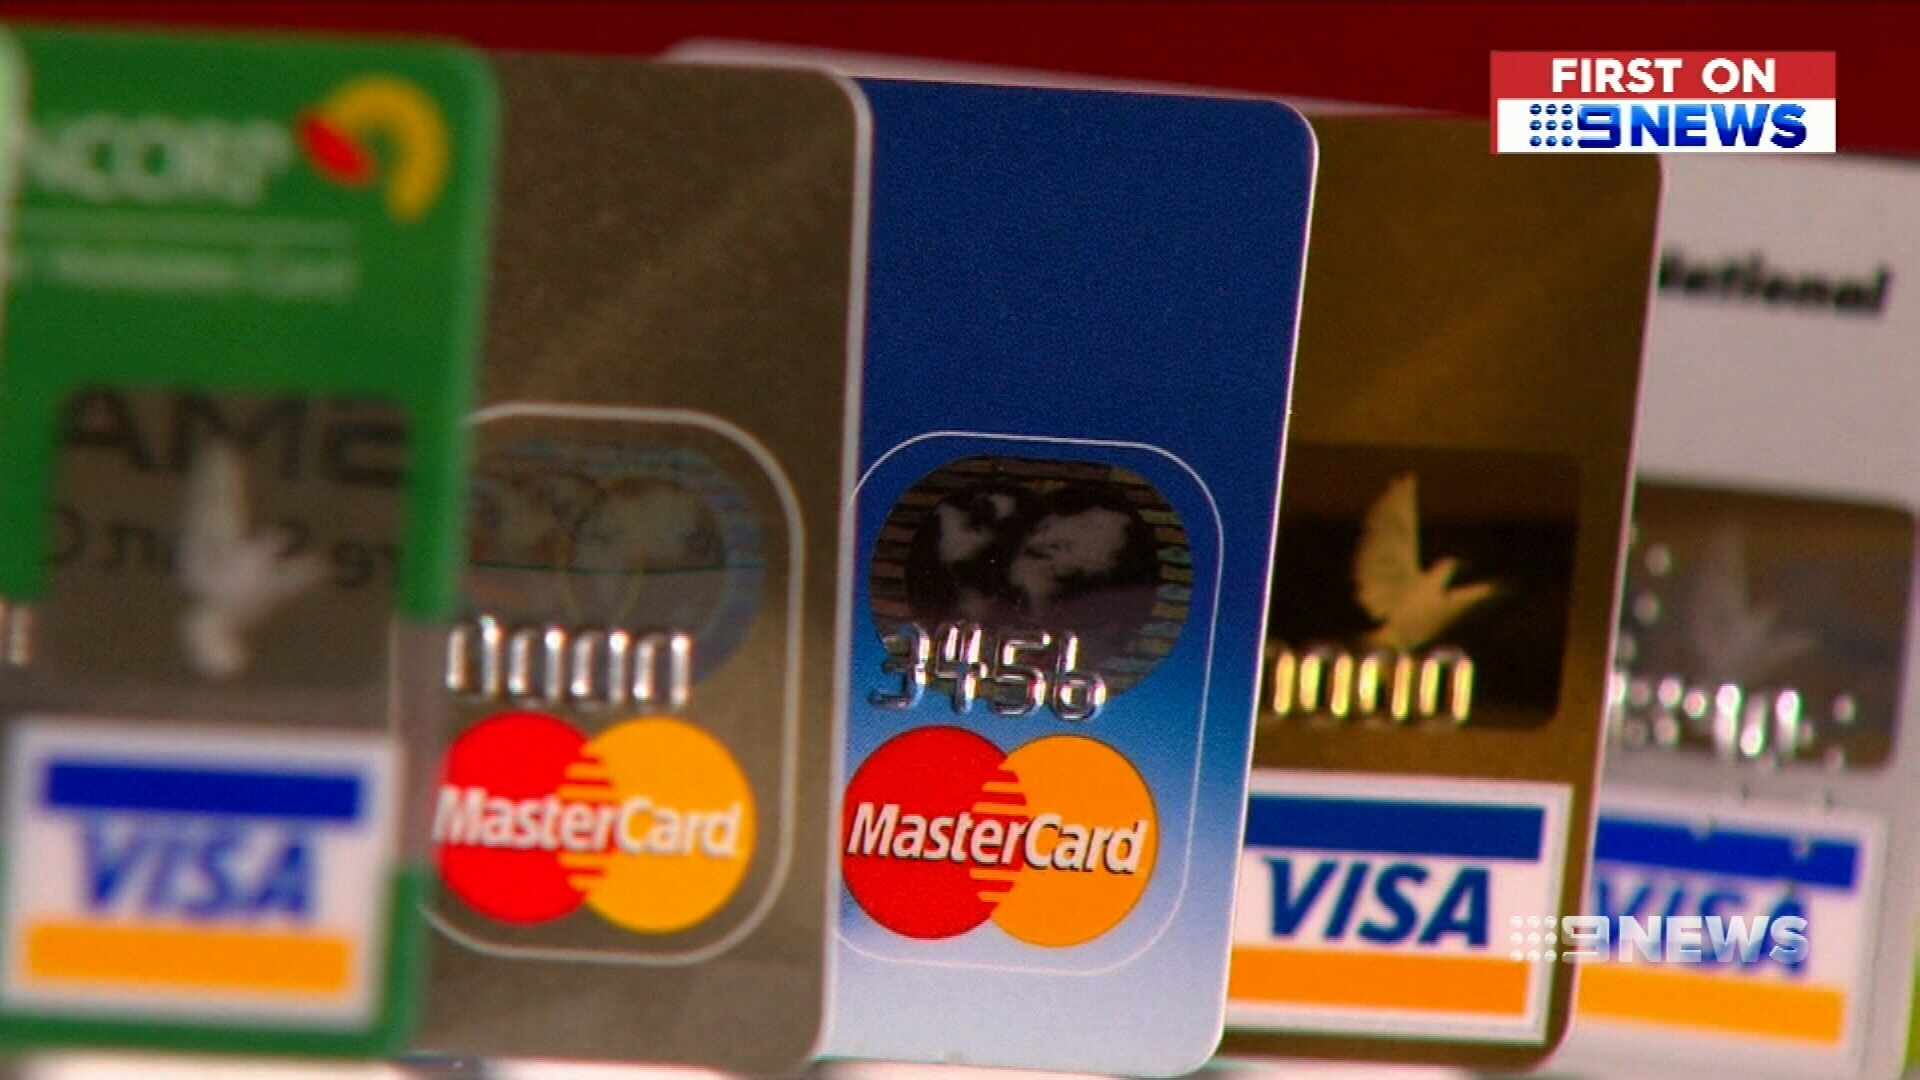 Crackdown on excessive credit card surcharges